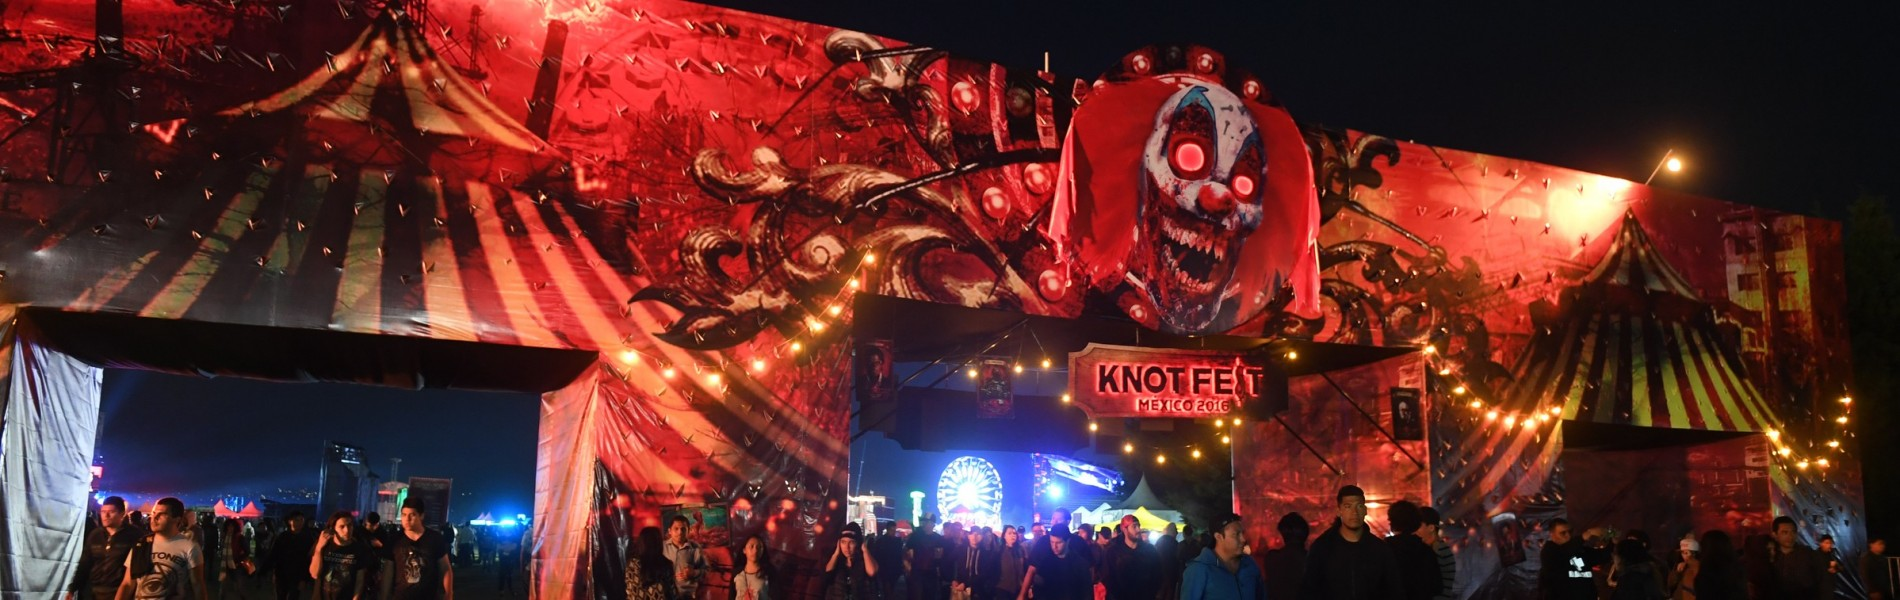 After a successful first edition in Mexico last year, the Knotfest 2016 return to Foro Pegaso, where was presented a poster full of the best metal bands that shook the heads of all present. Monster Energy unleashed with the presence of Hatebreed band and